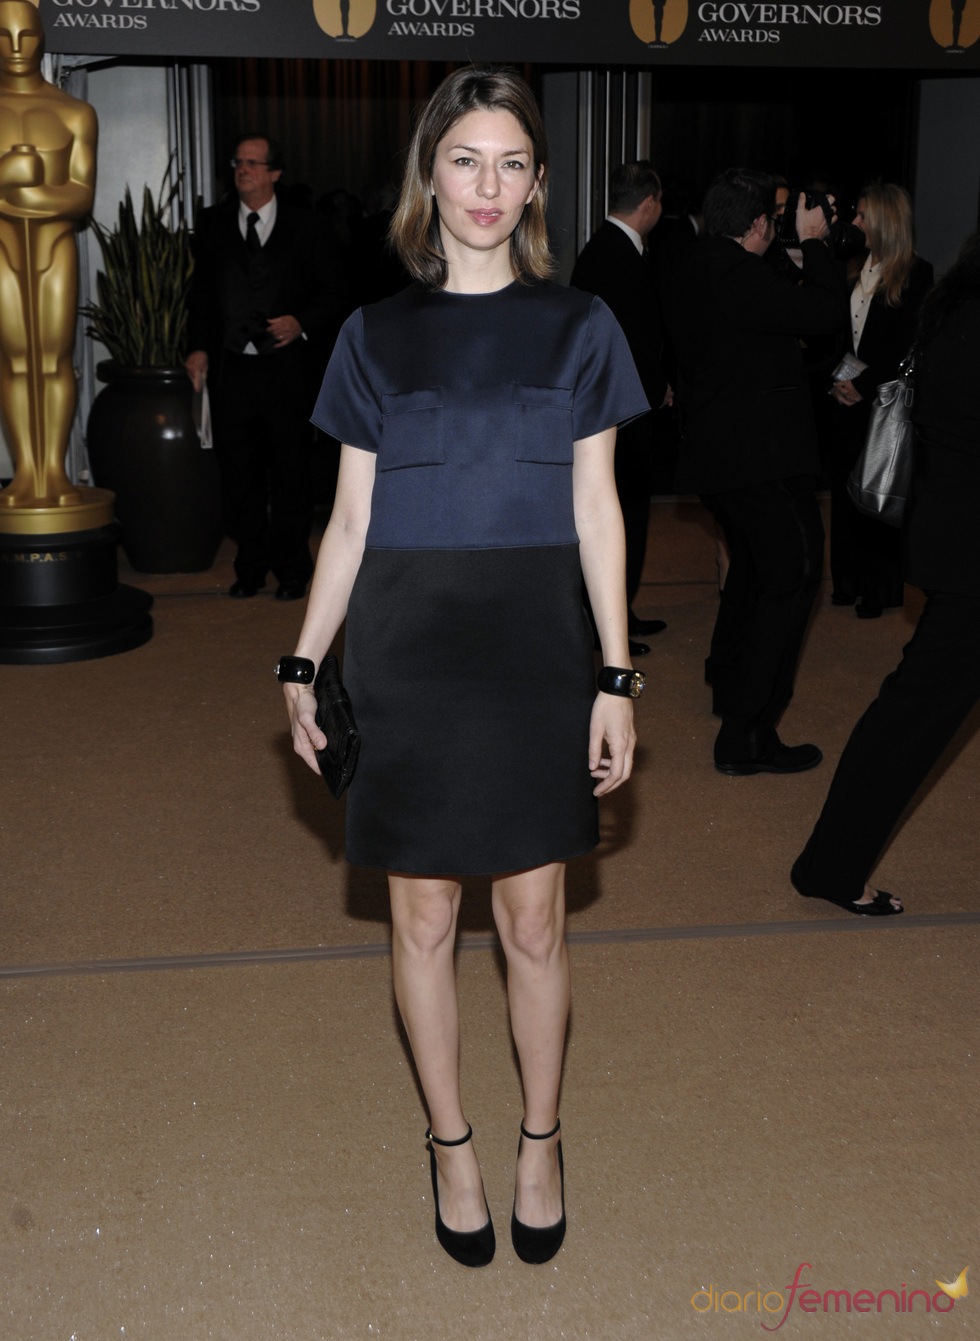 Sofia Coppola en la ceremonia de los Governors Awards 2010